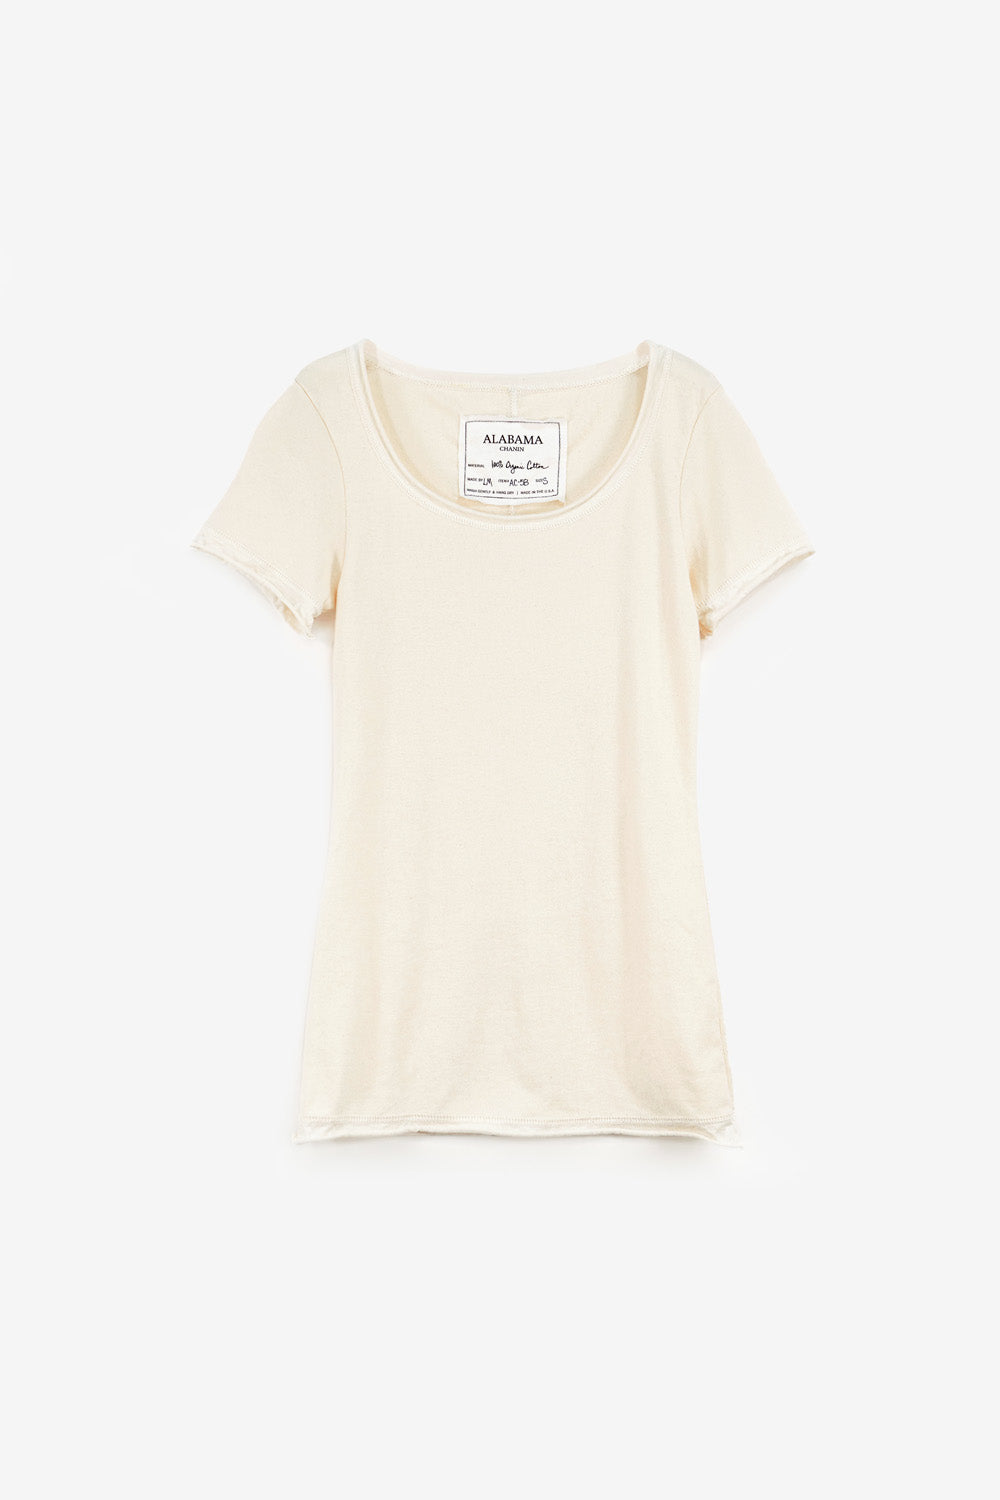 Alabama Chanin The Essential Rib Top Women's Short Sleeve Rib Top with Crew Neck in Natural